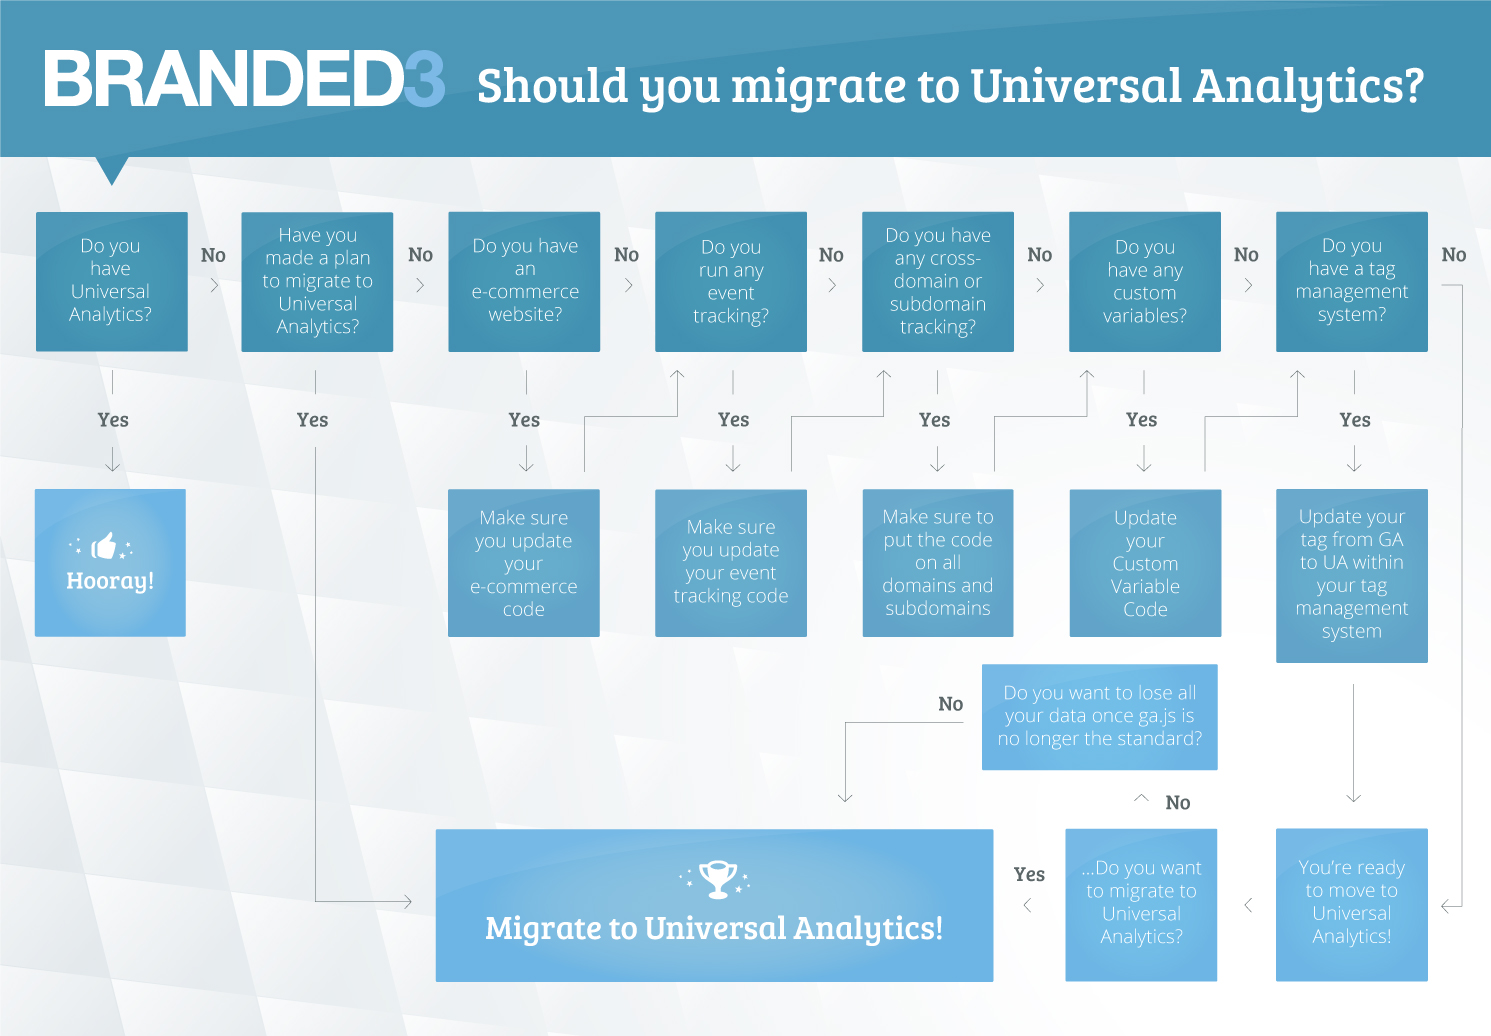 should you migrate to universal analytics flowchart